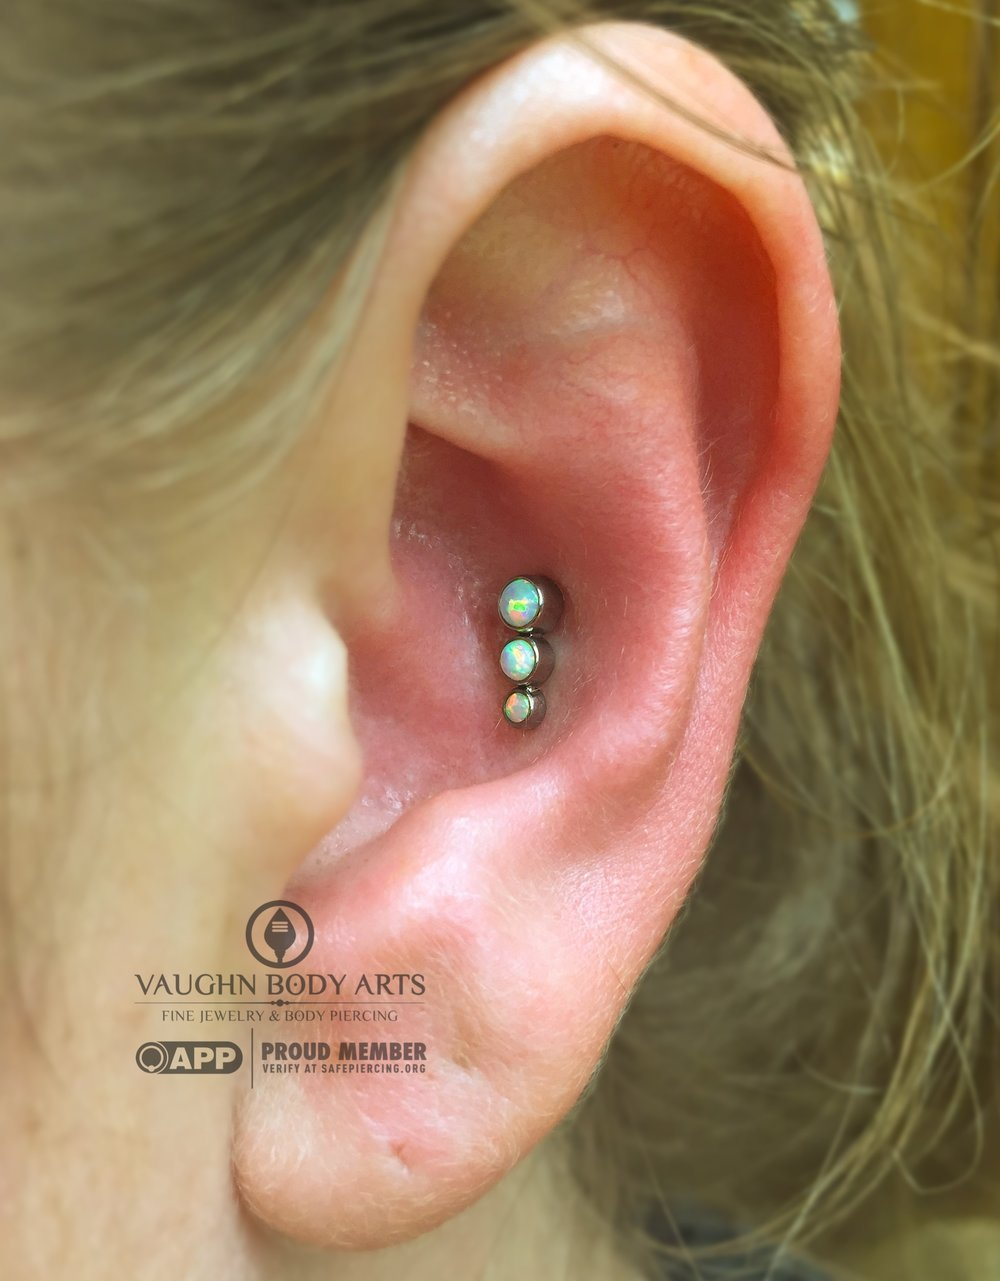 Conch piercing with titanium jewelry from Anatometal.